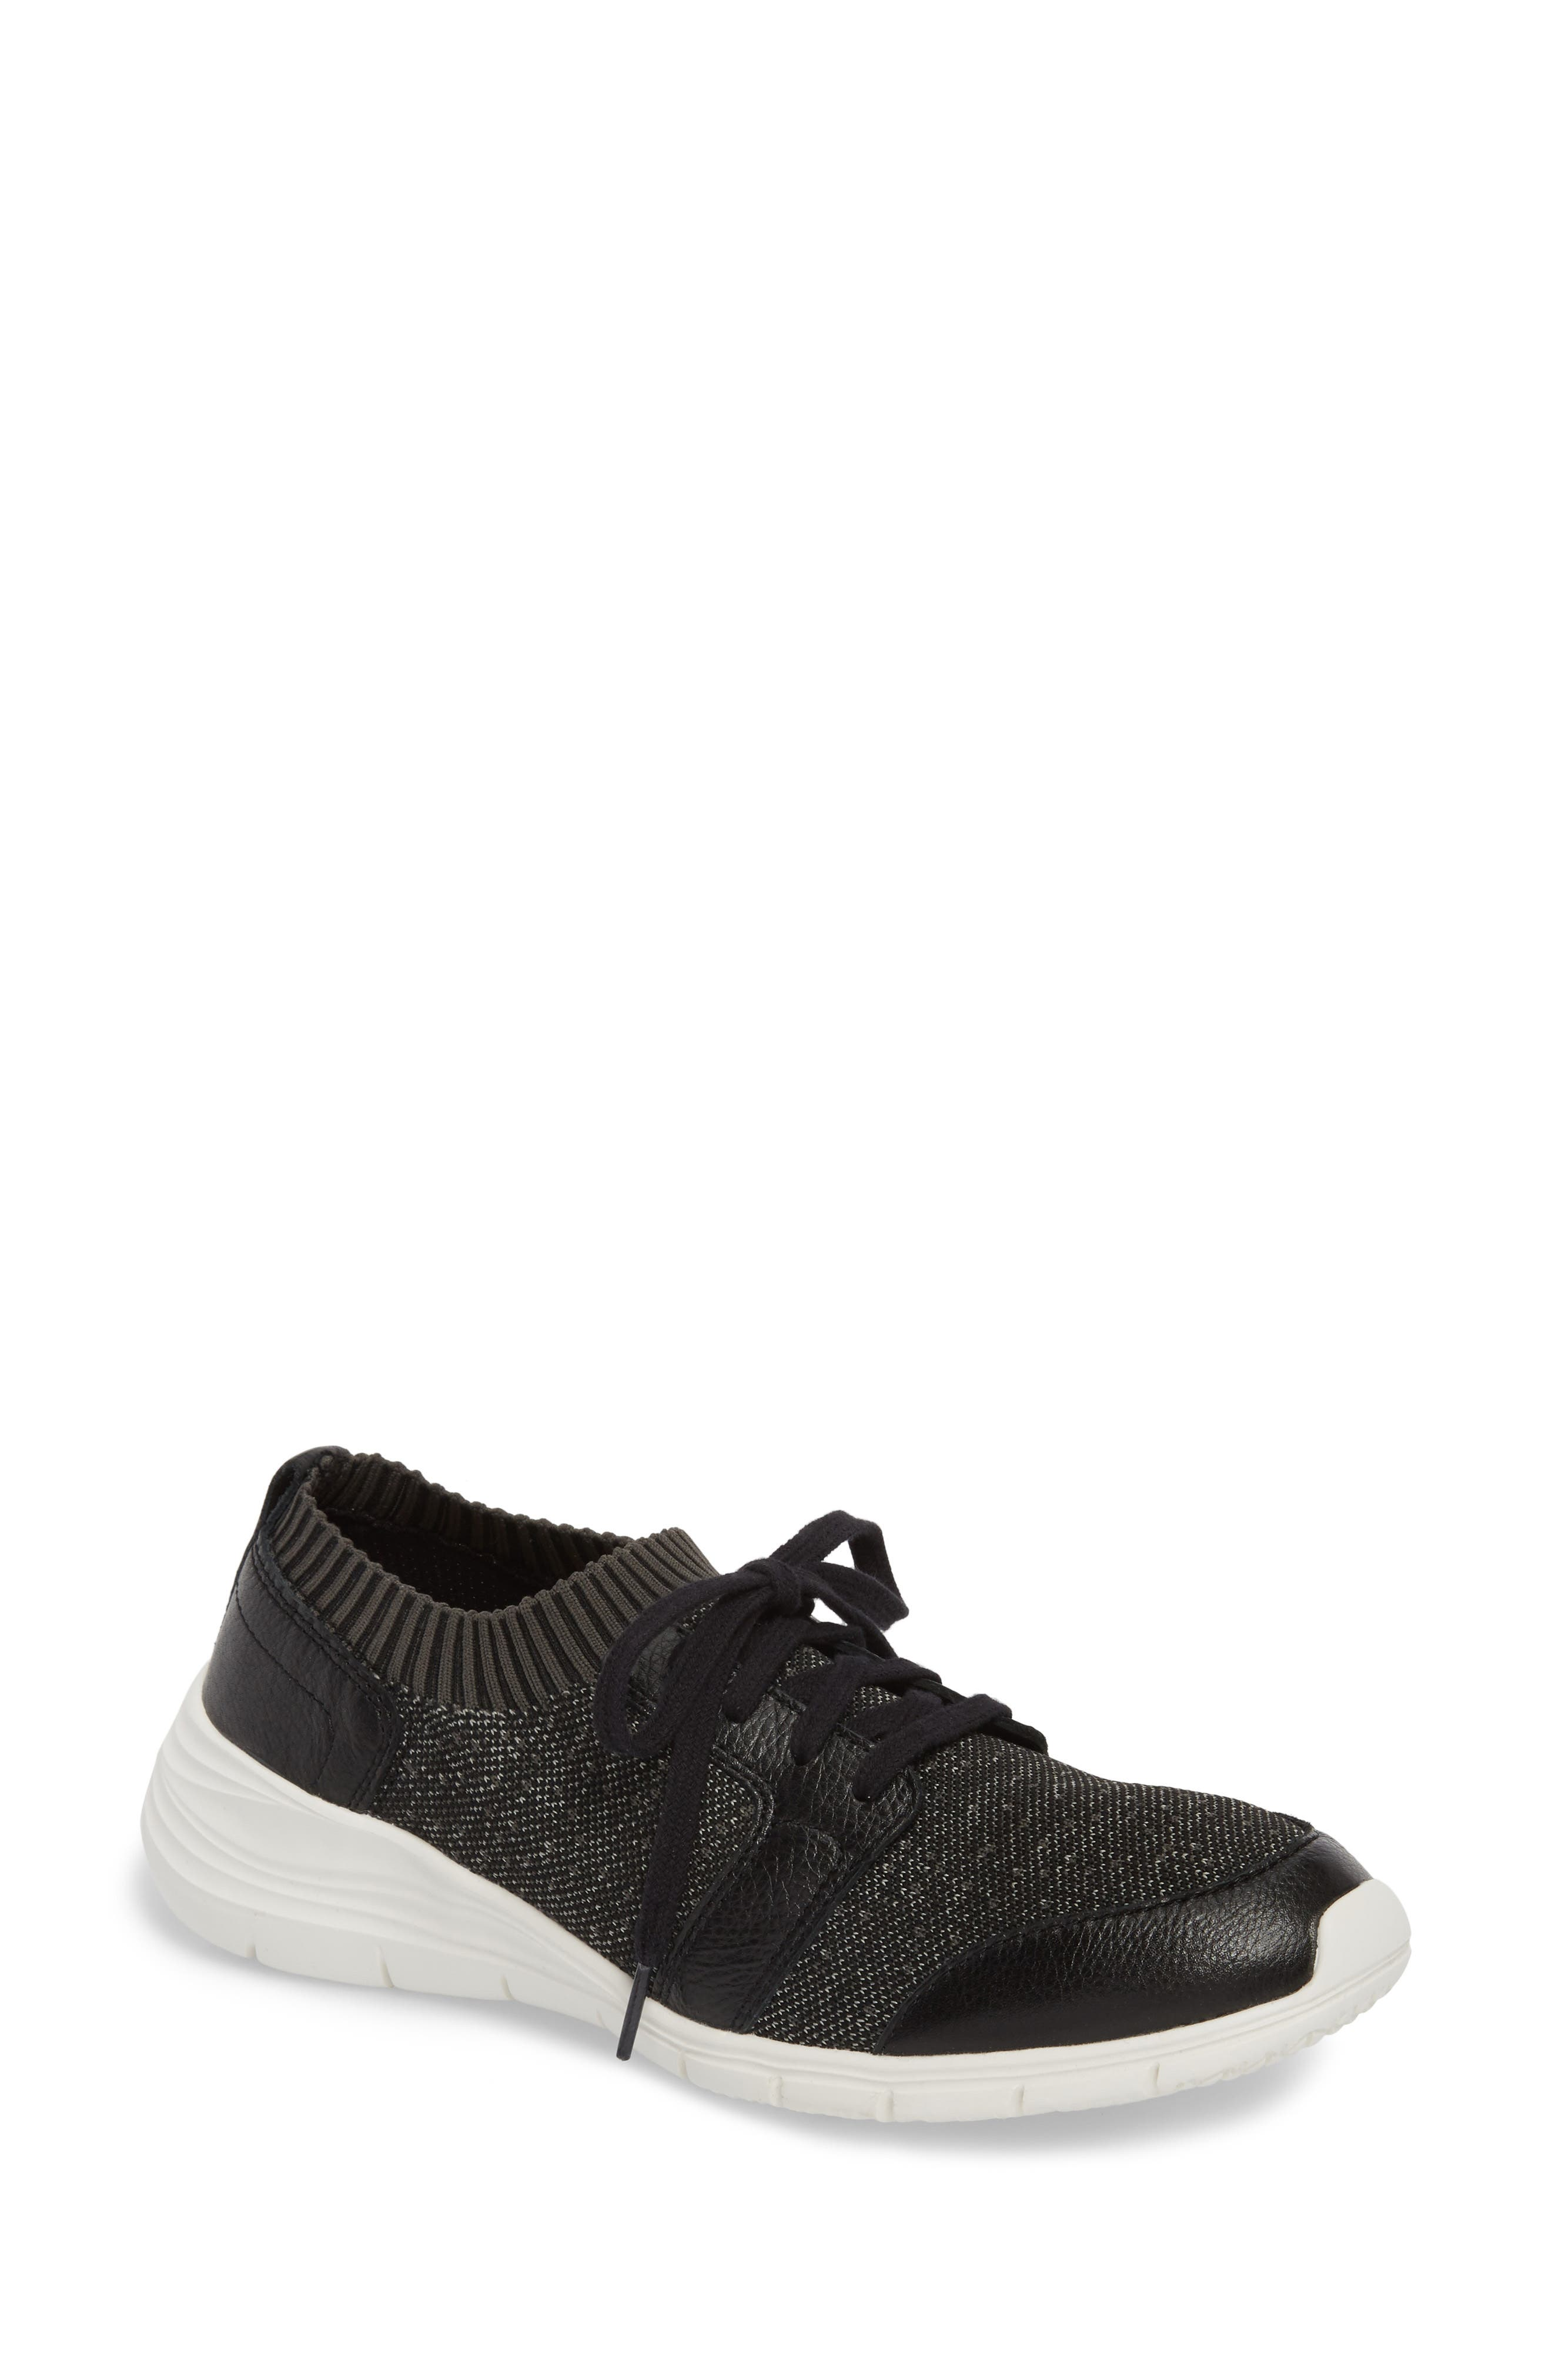 Cypress Knit Sneaker,                         Main,                         color, BLACK FABRIC